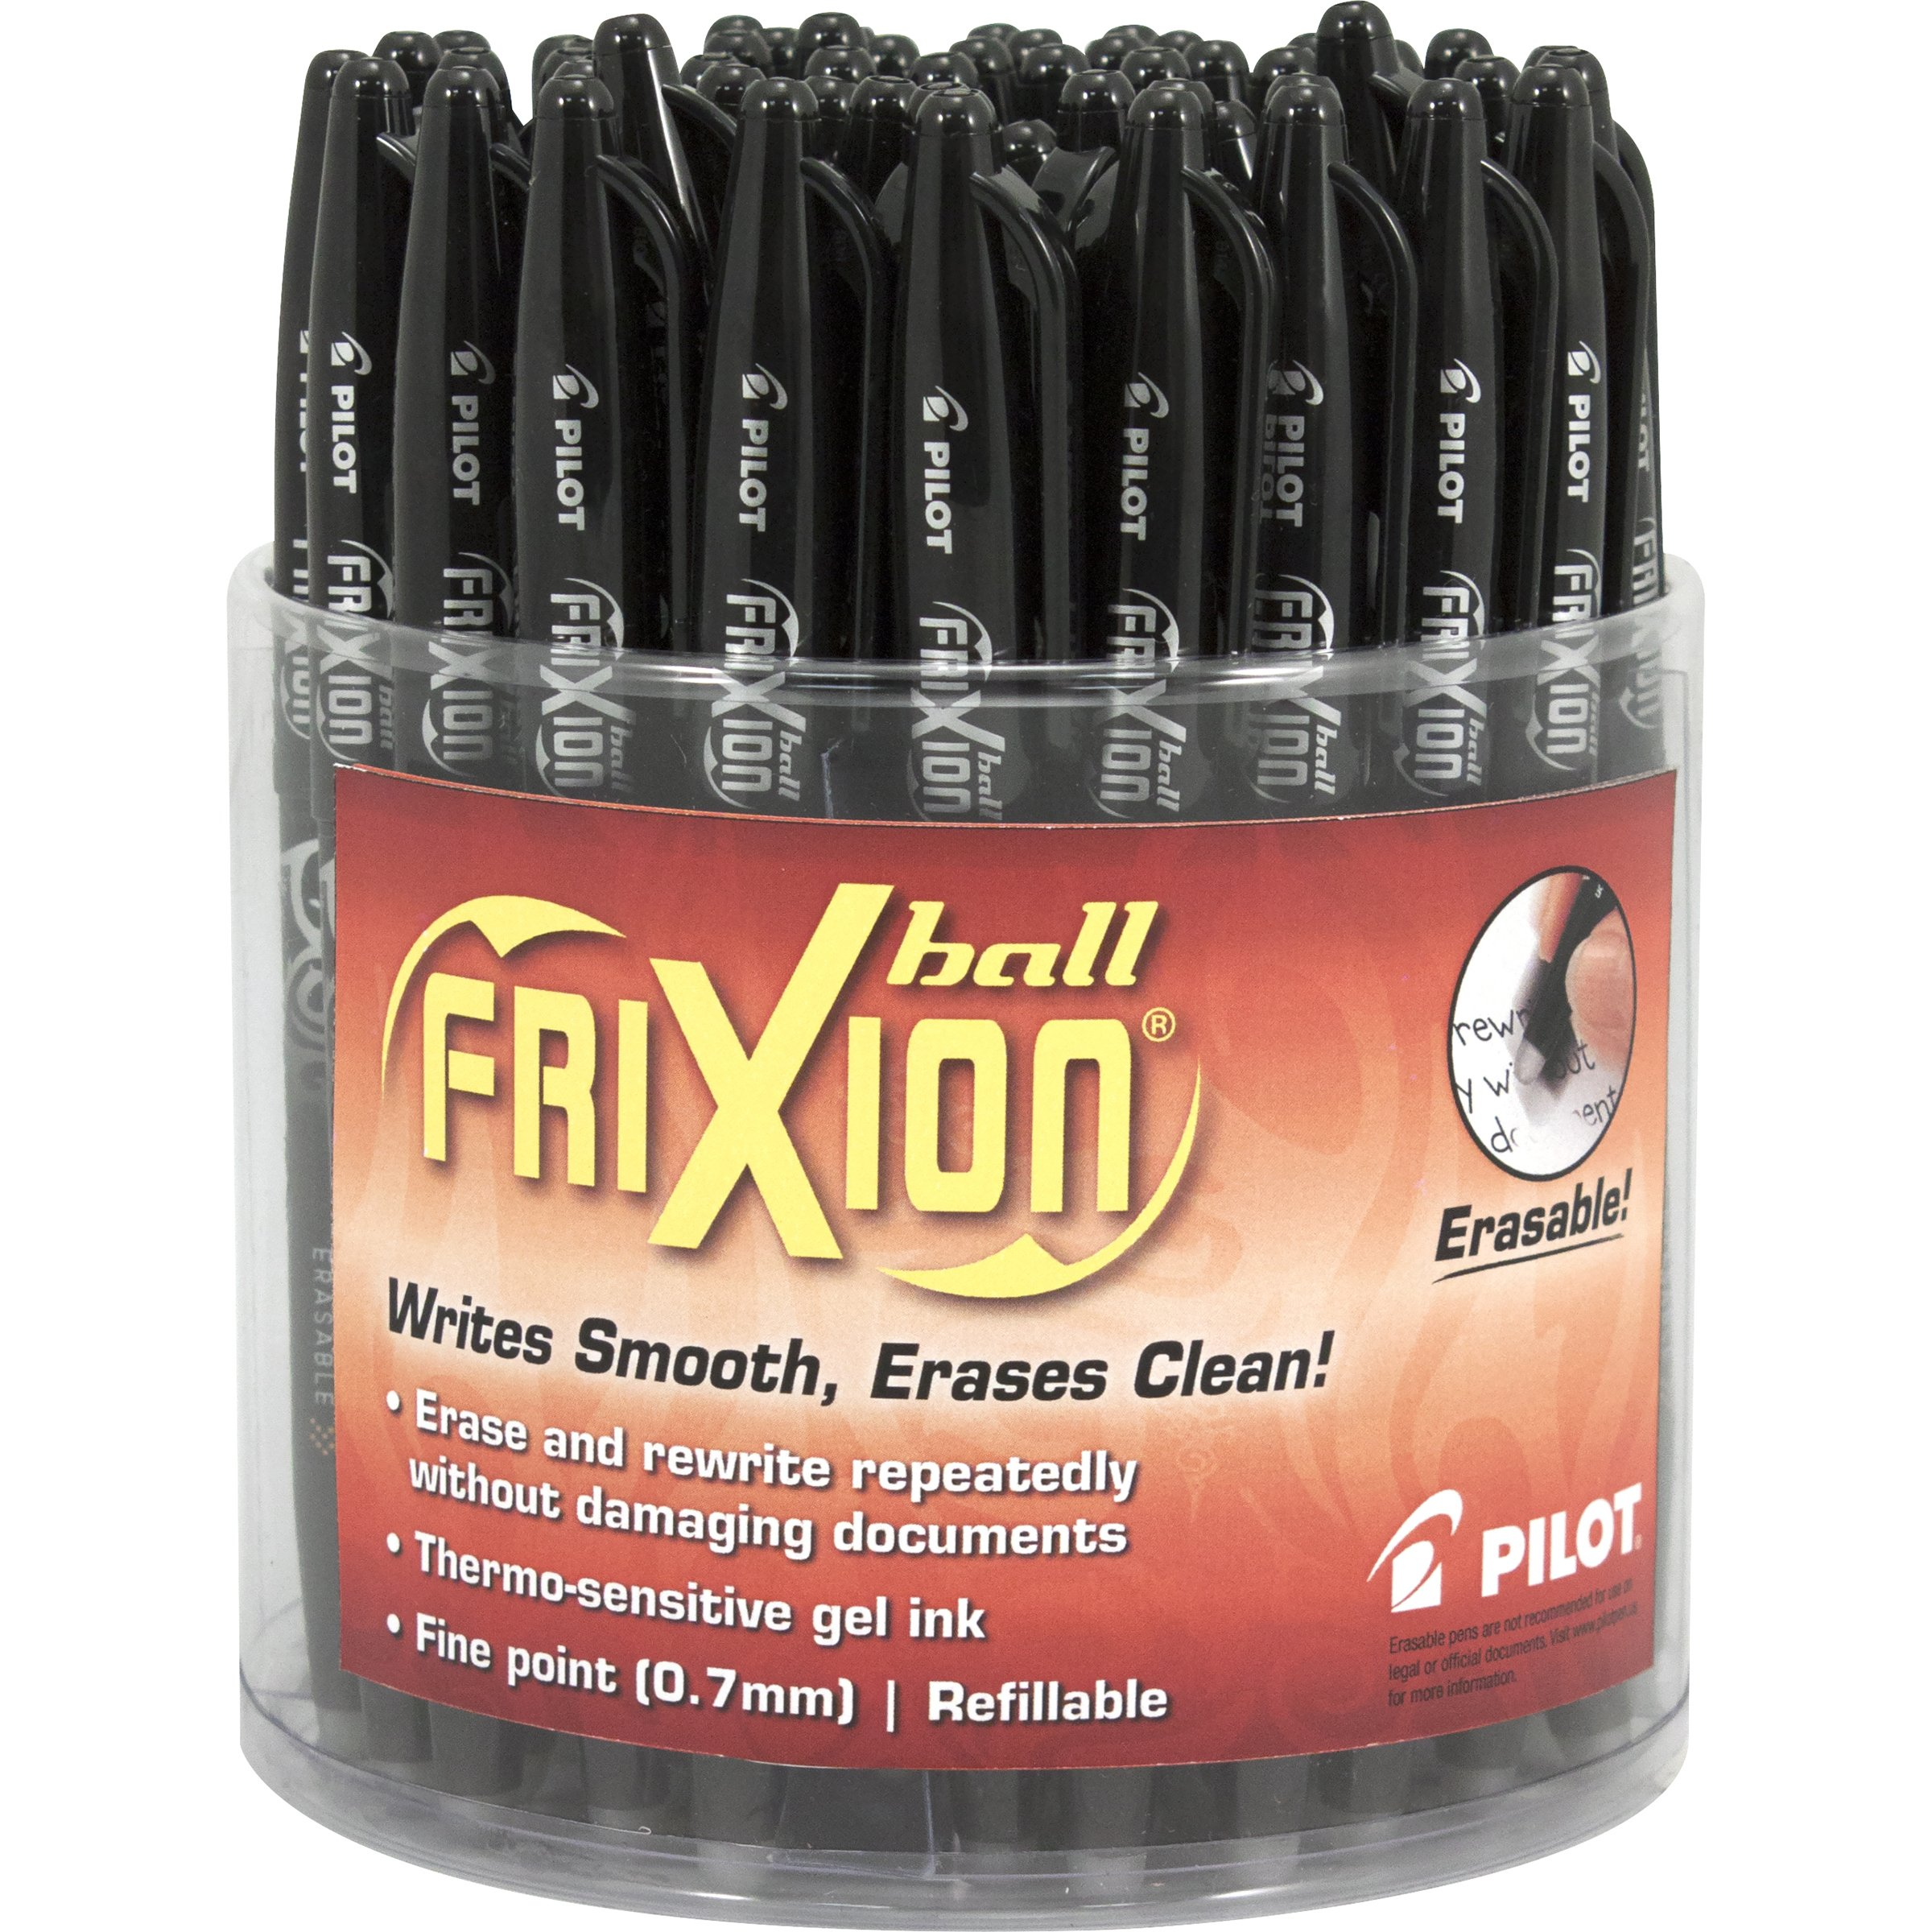 Pilot FriXion Erasable Ball Pen Gel Ink Black Ink Fine Point (.7) Tub of 48 Pens; Make Mistakes Disappear, No Need For White Out. Smooth Lines to the End of Page, America's #1 Selling Pen Brand by Pilot (Image #1)